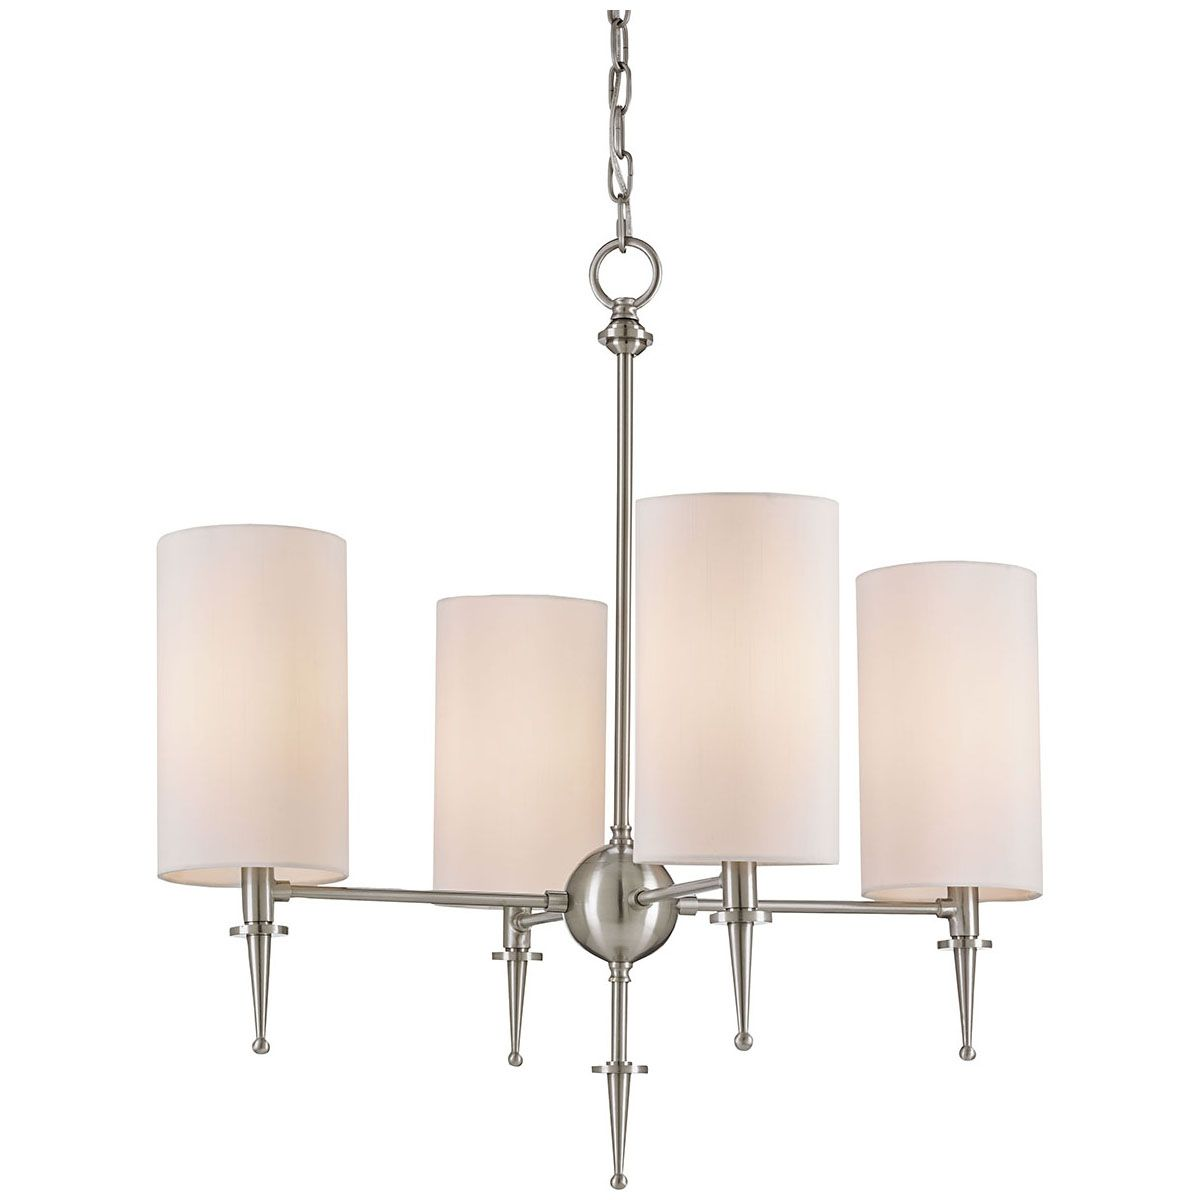 Currey and Company Stanhope Brushed Nickel Chandelier 9843